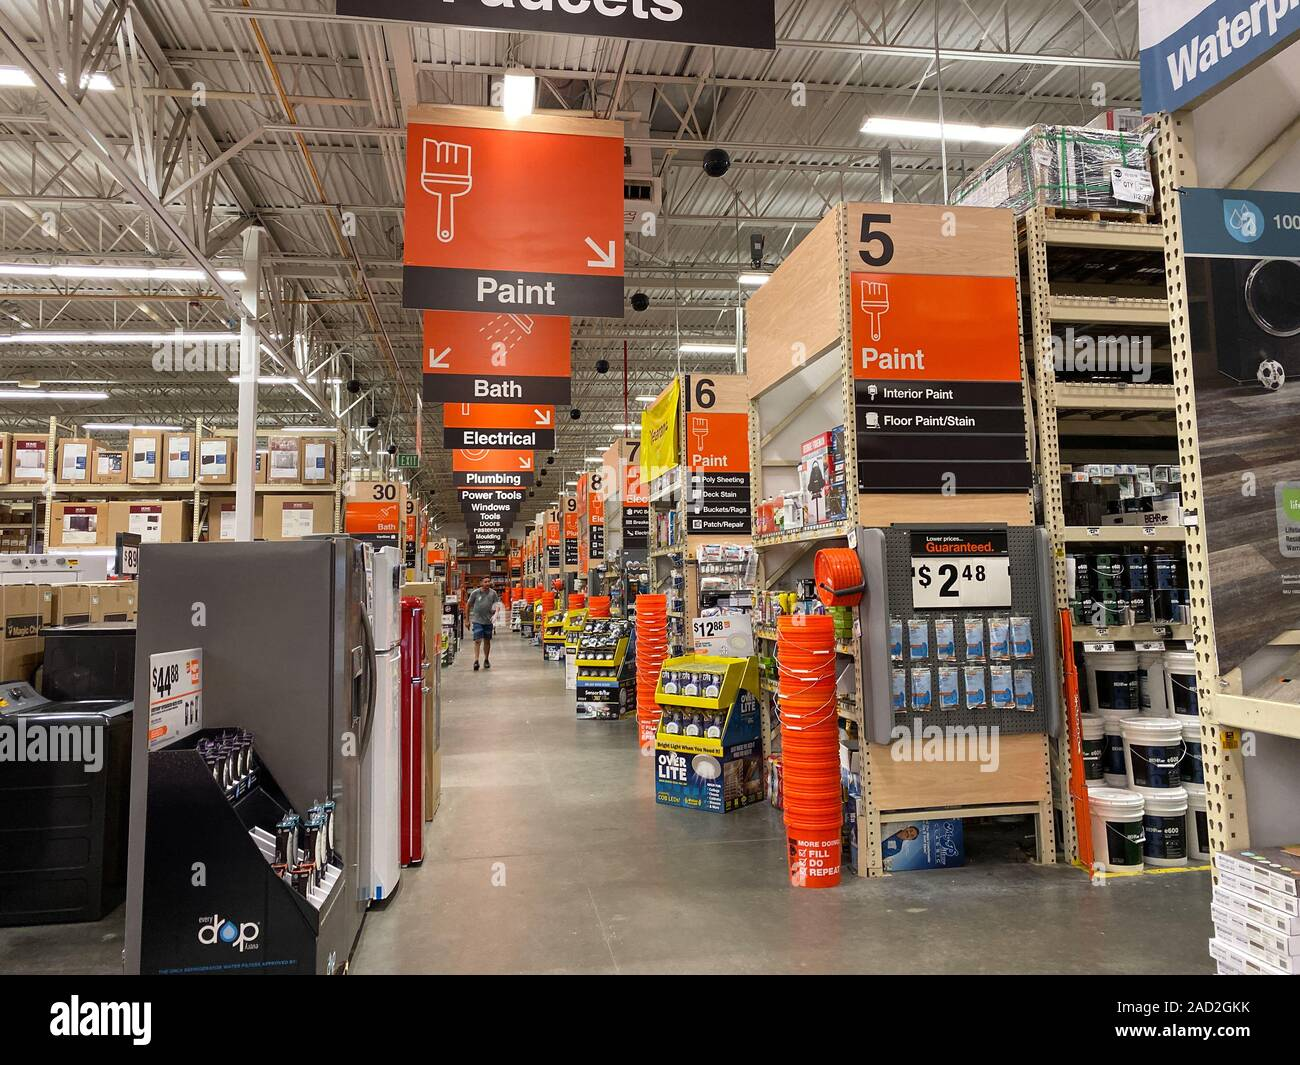 Orlando Fl Usa 11 11 19 The Signs Hanging From The Ceiling At Home Depot Home Improvement Store That Designate What Departments Are In The Aisle Whil Stock Photo Alamy